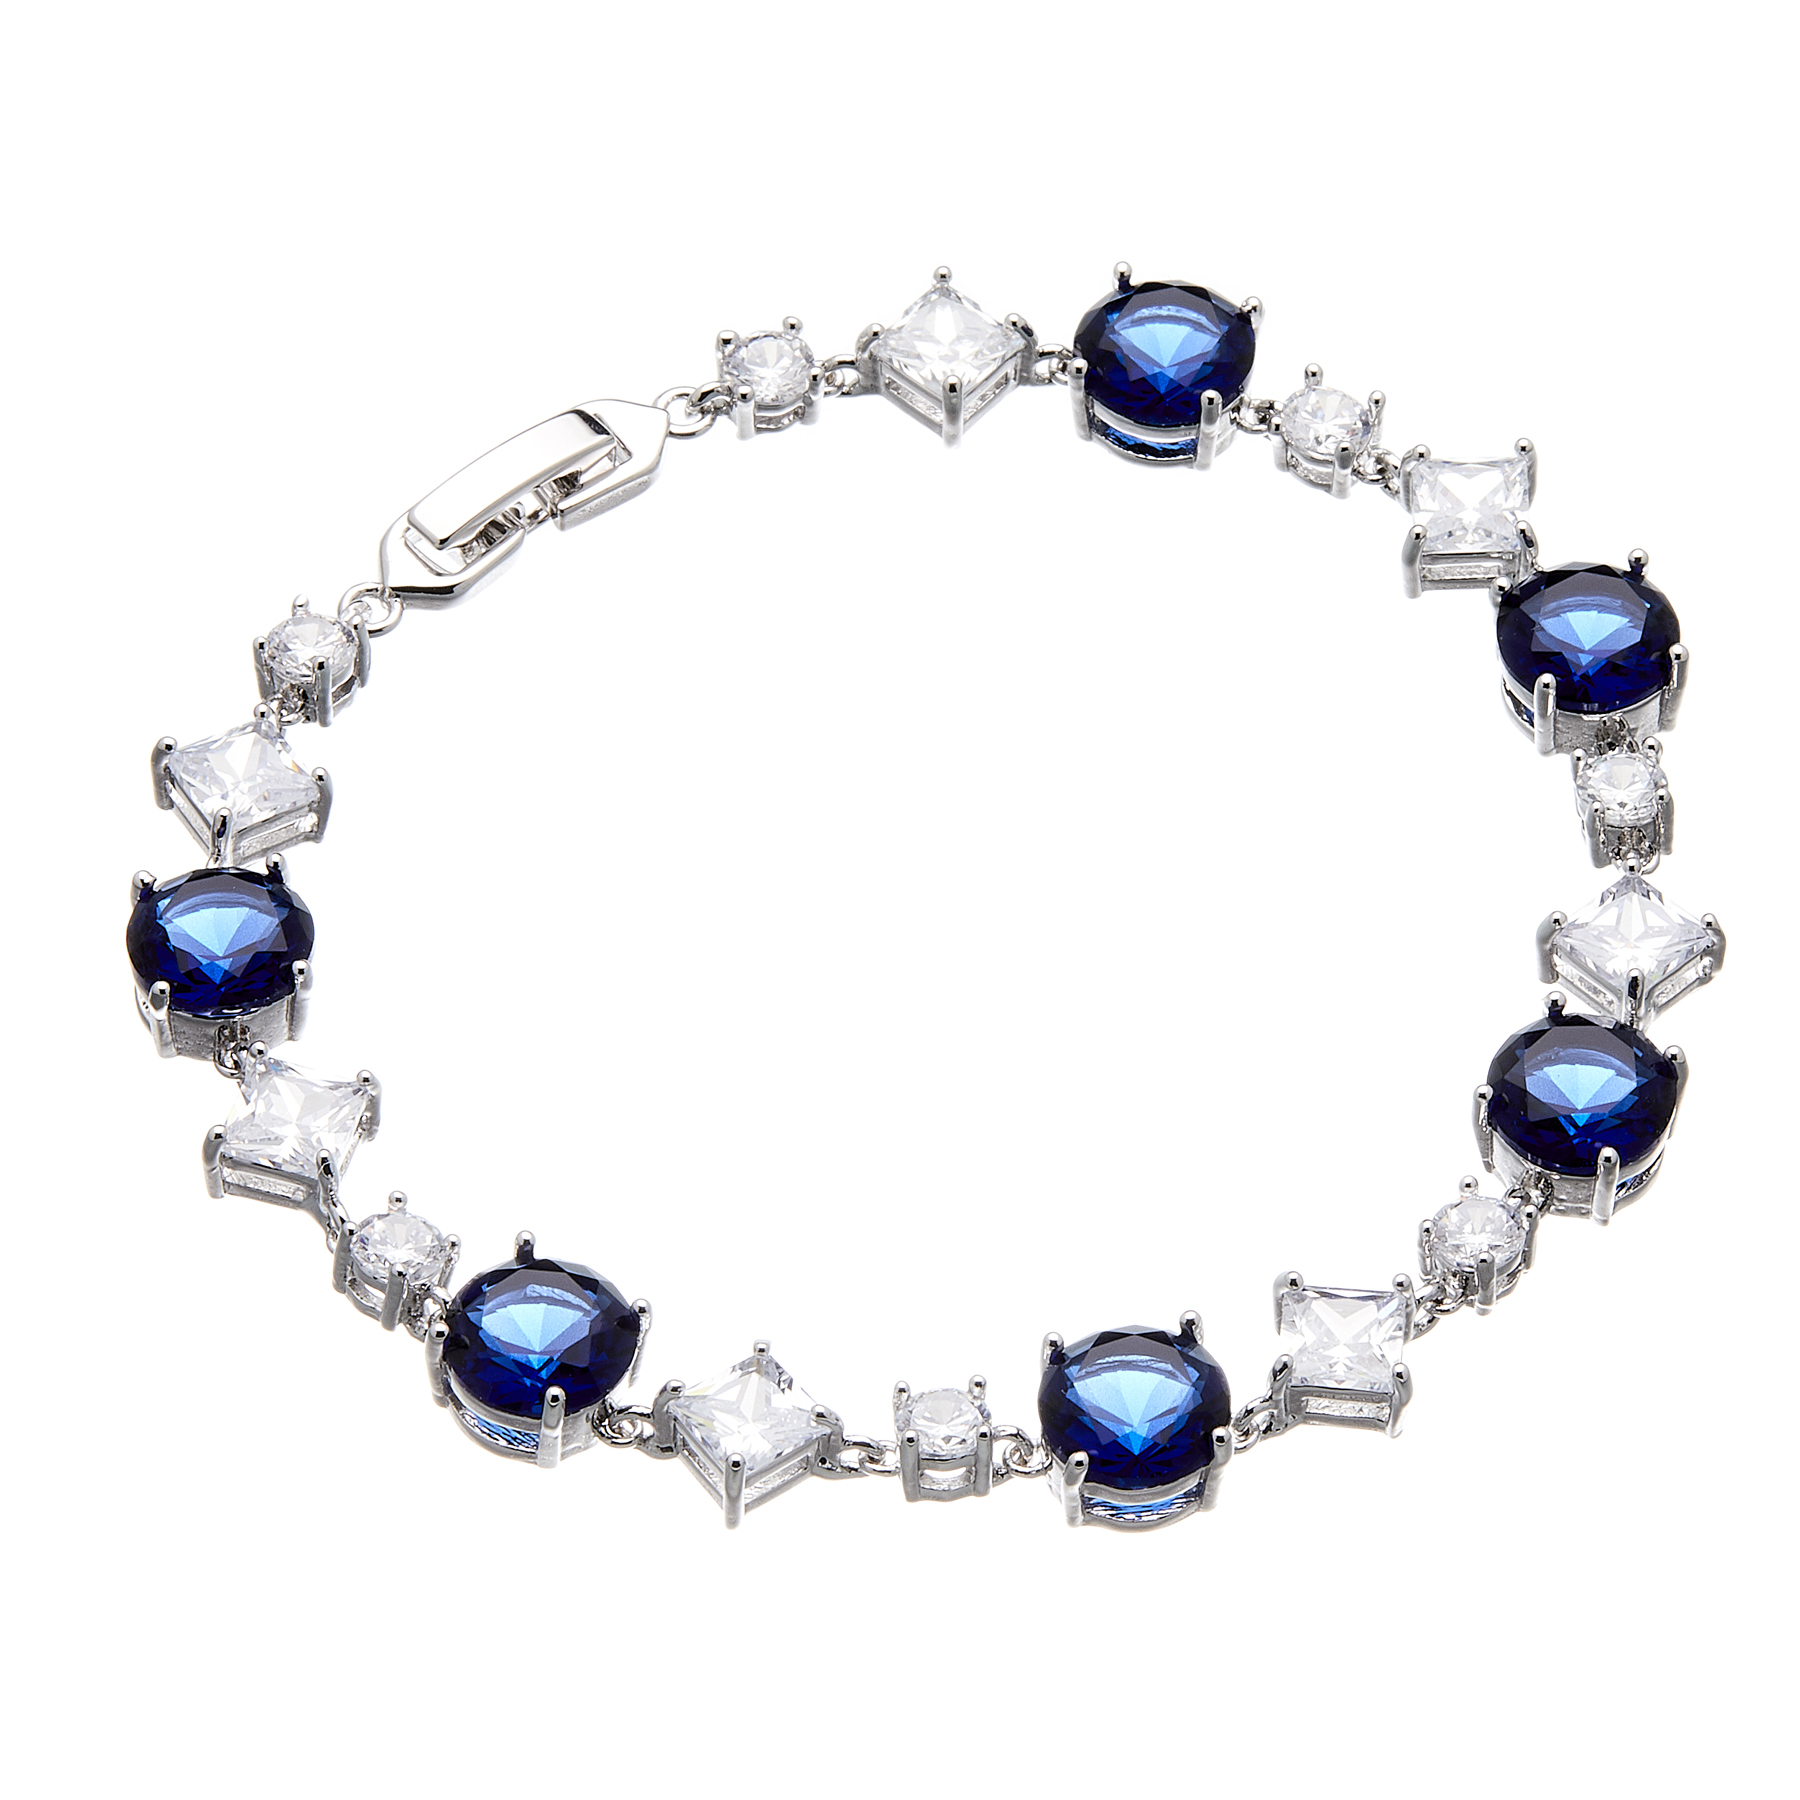 Bracelet - silver with navy blue Cubic Zirconia Stones and clear crystals - Narda